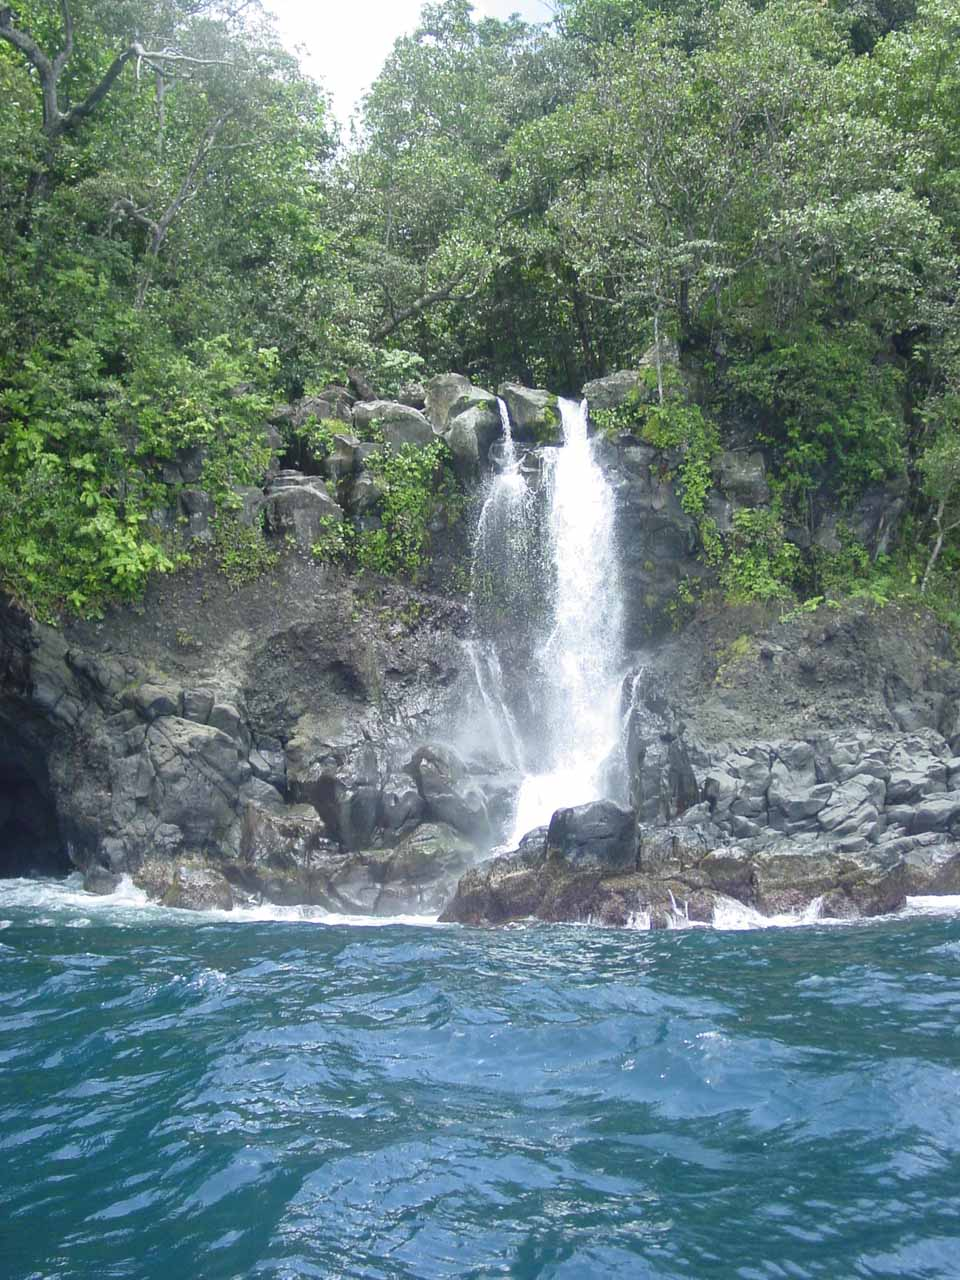 Another look at the Savulevu Yavonu Waterfall